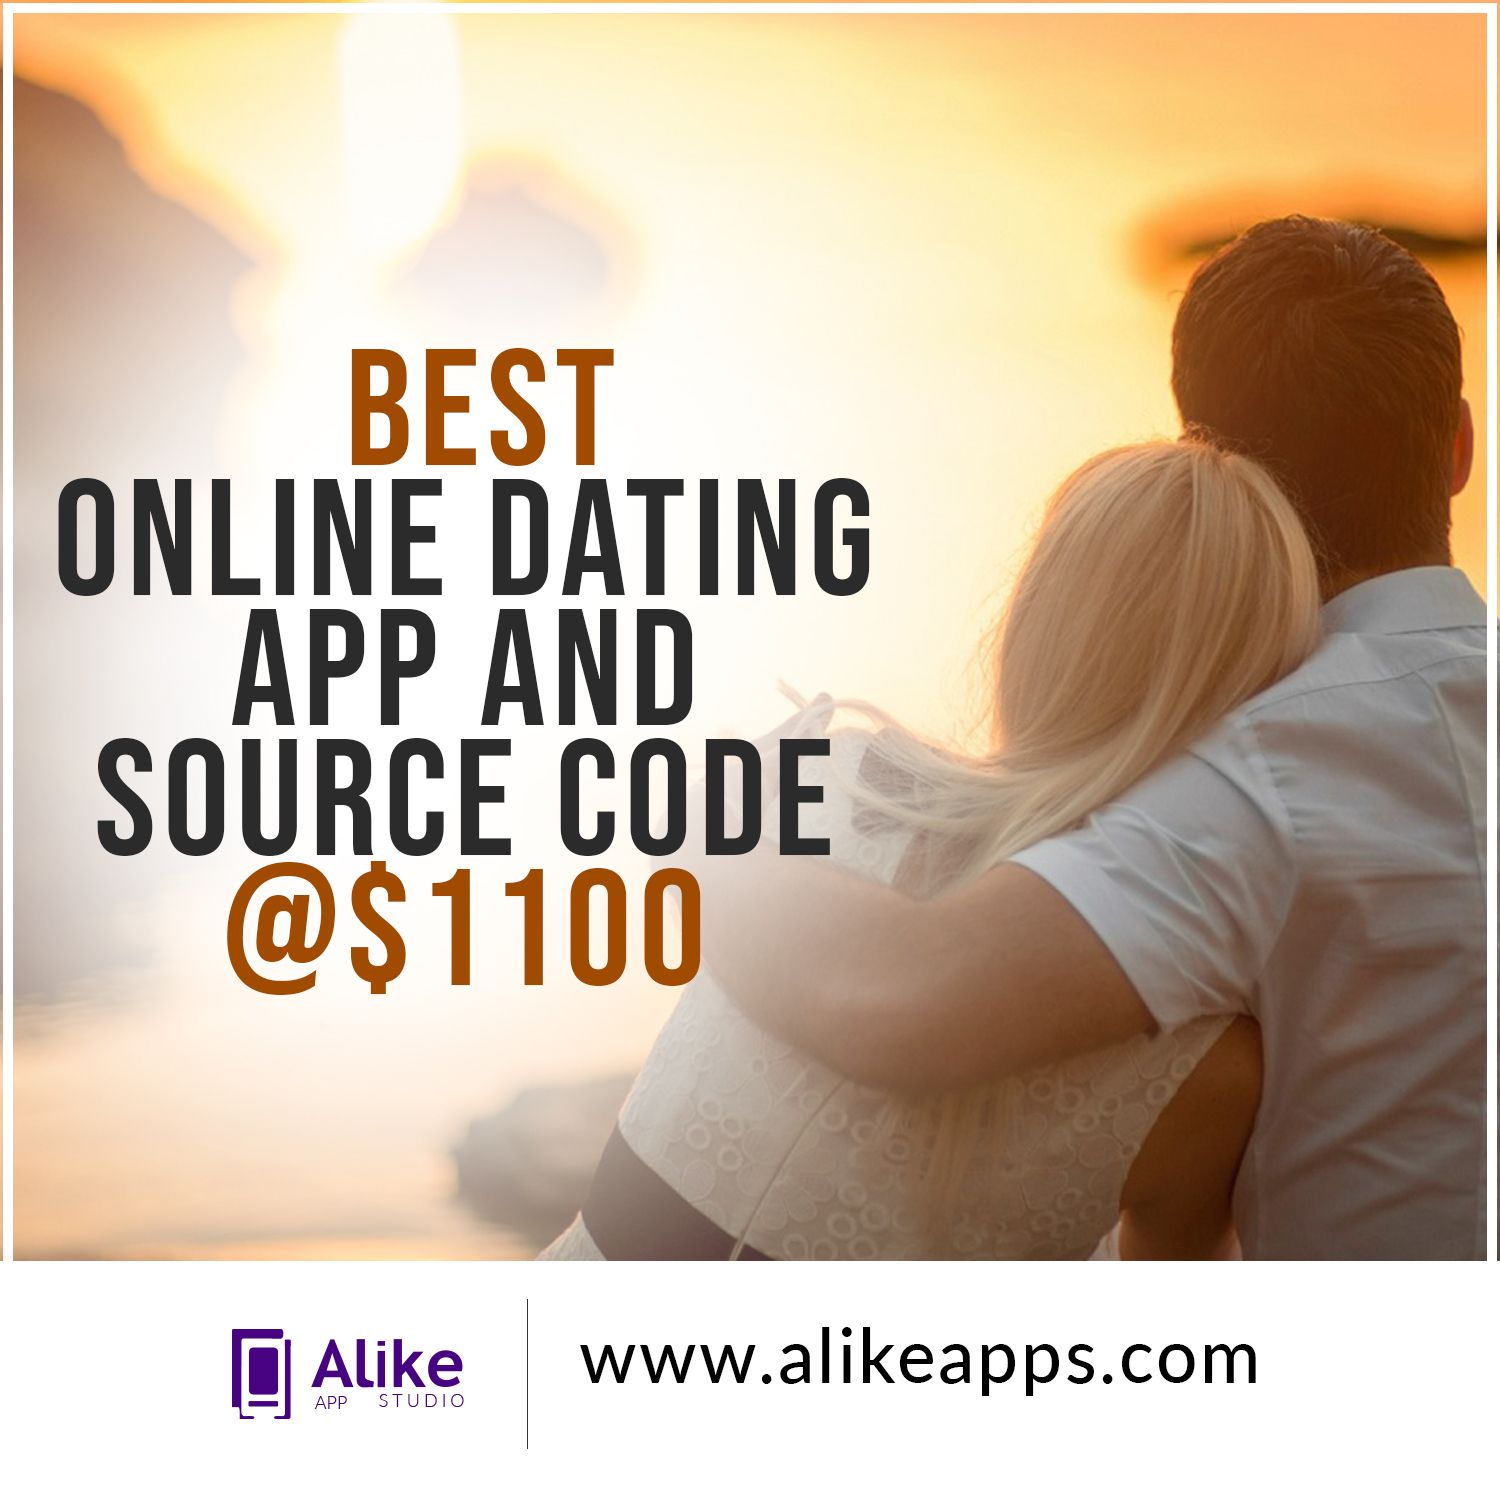 collect usa real man phone number who interested dating in girls